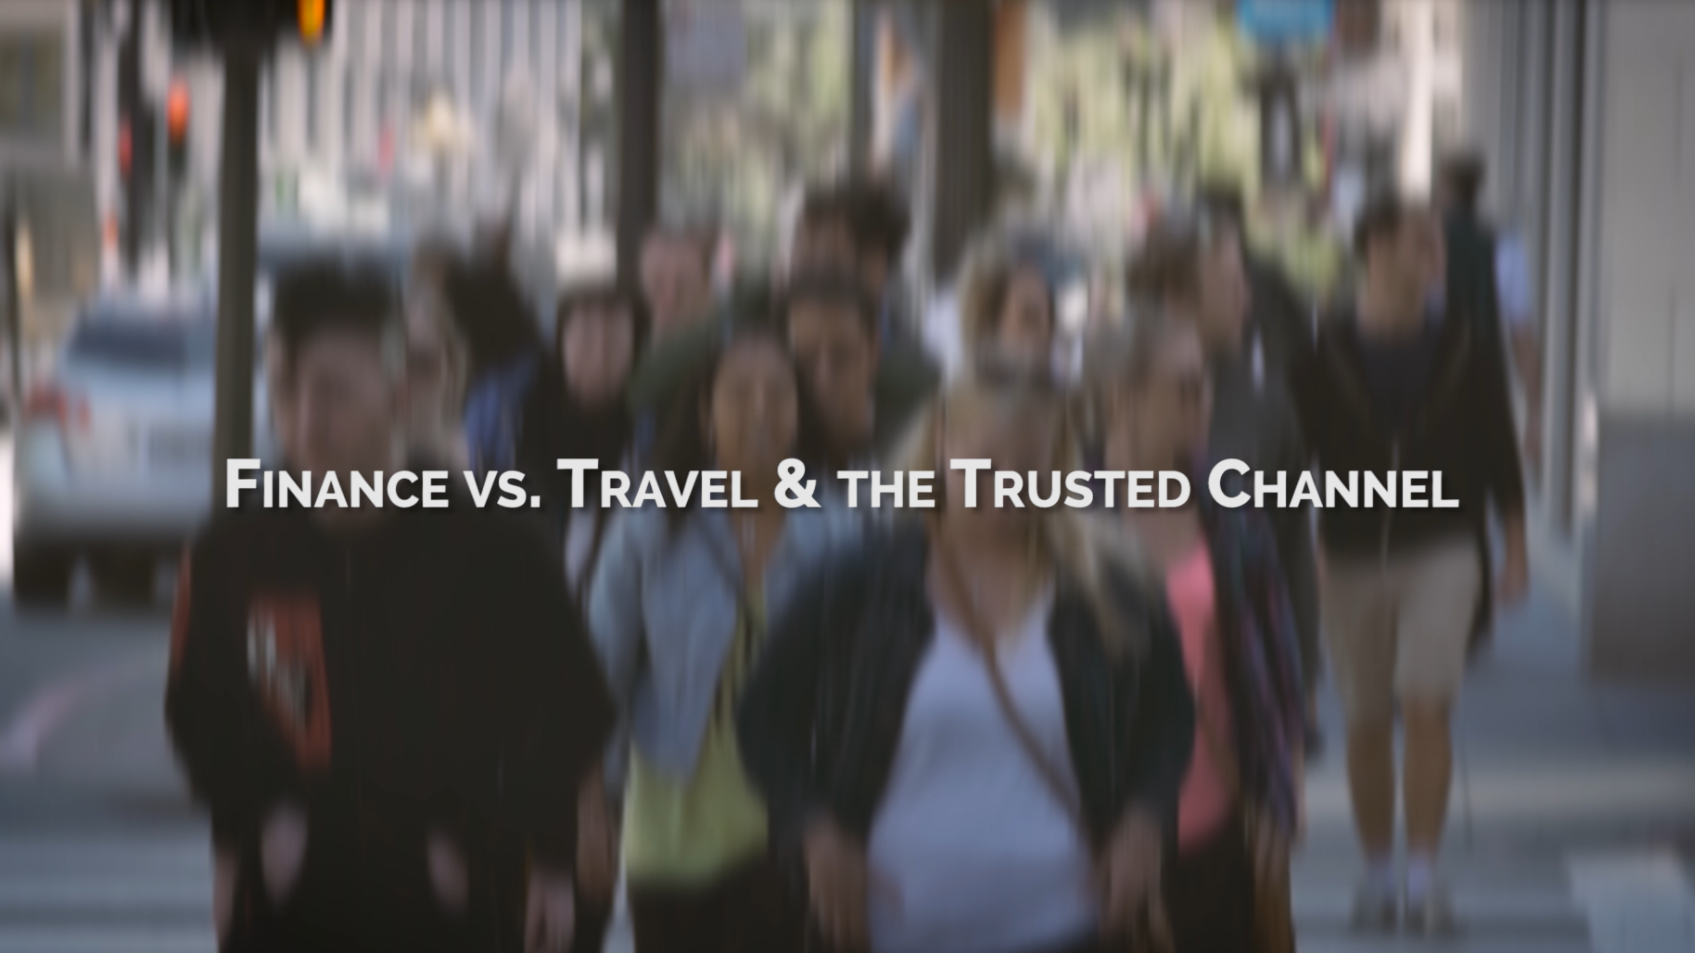 Trusted Customer Channel of Choice for Finance & Travel Industries